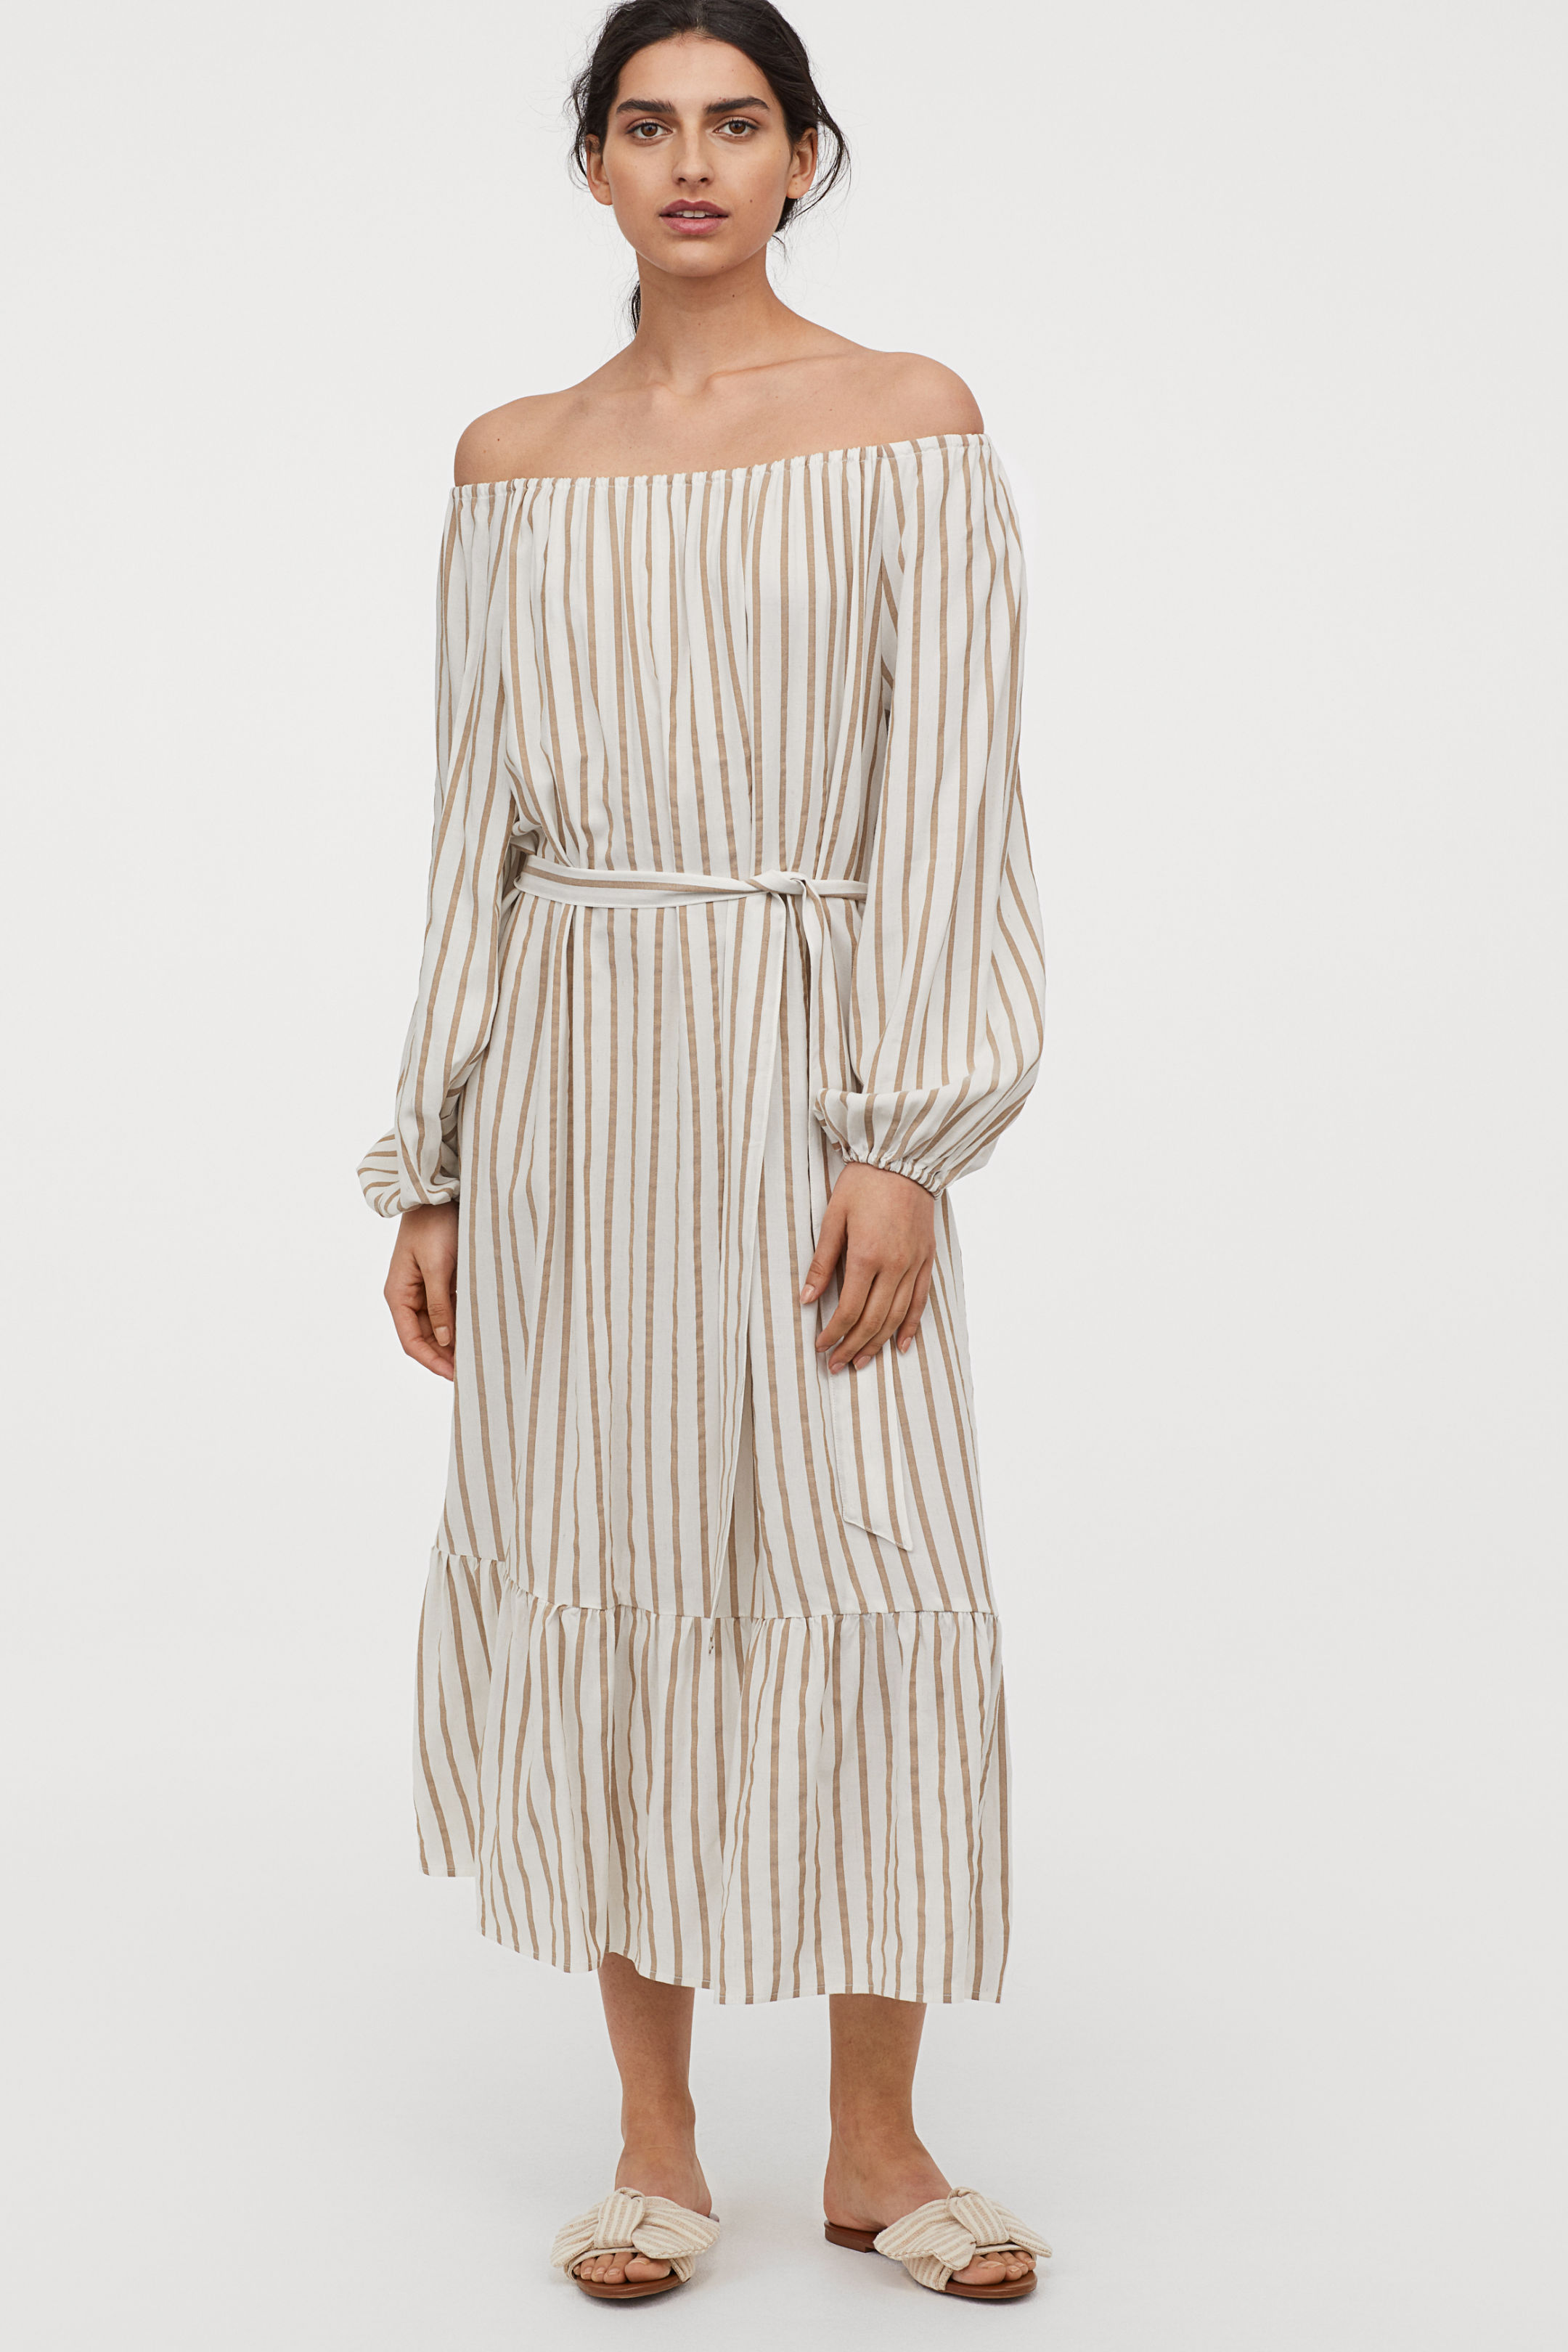 H&M Long Dress with Tie Belt